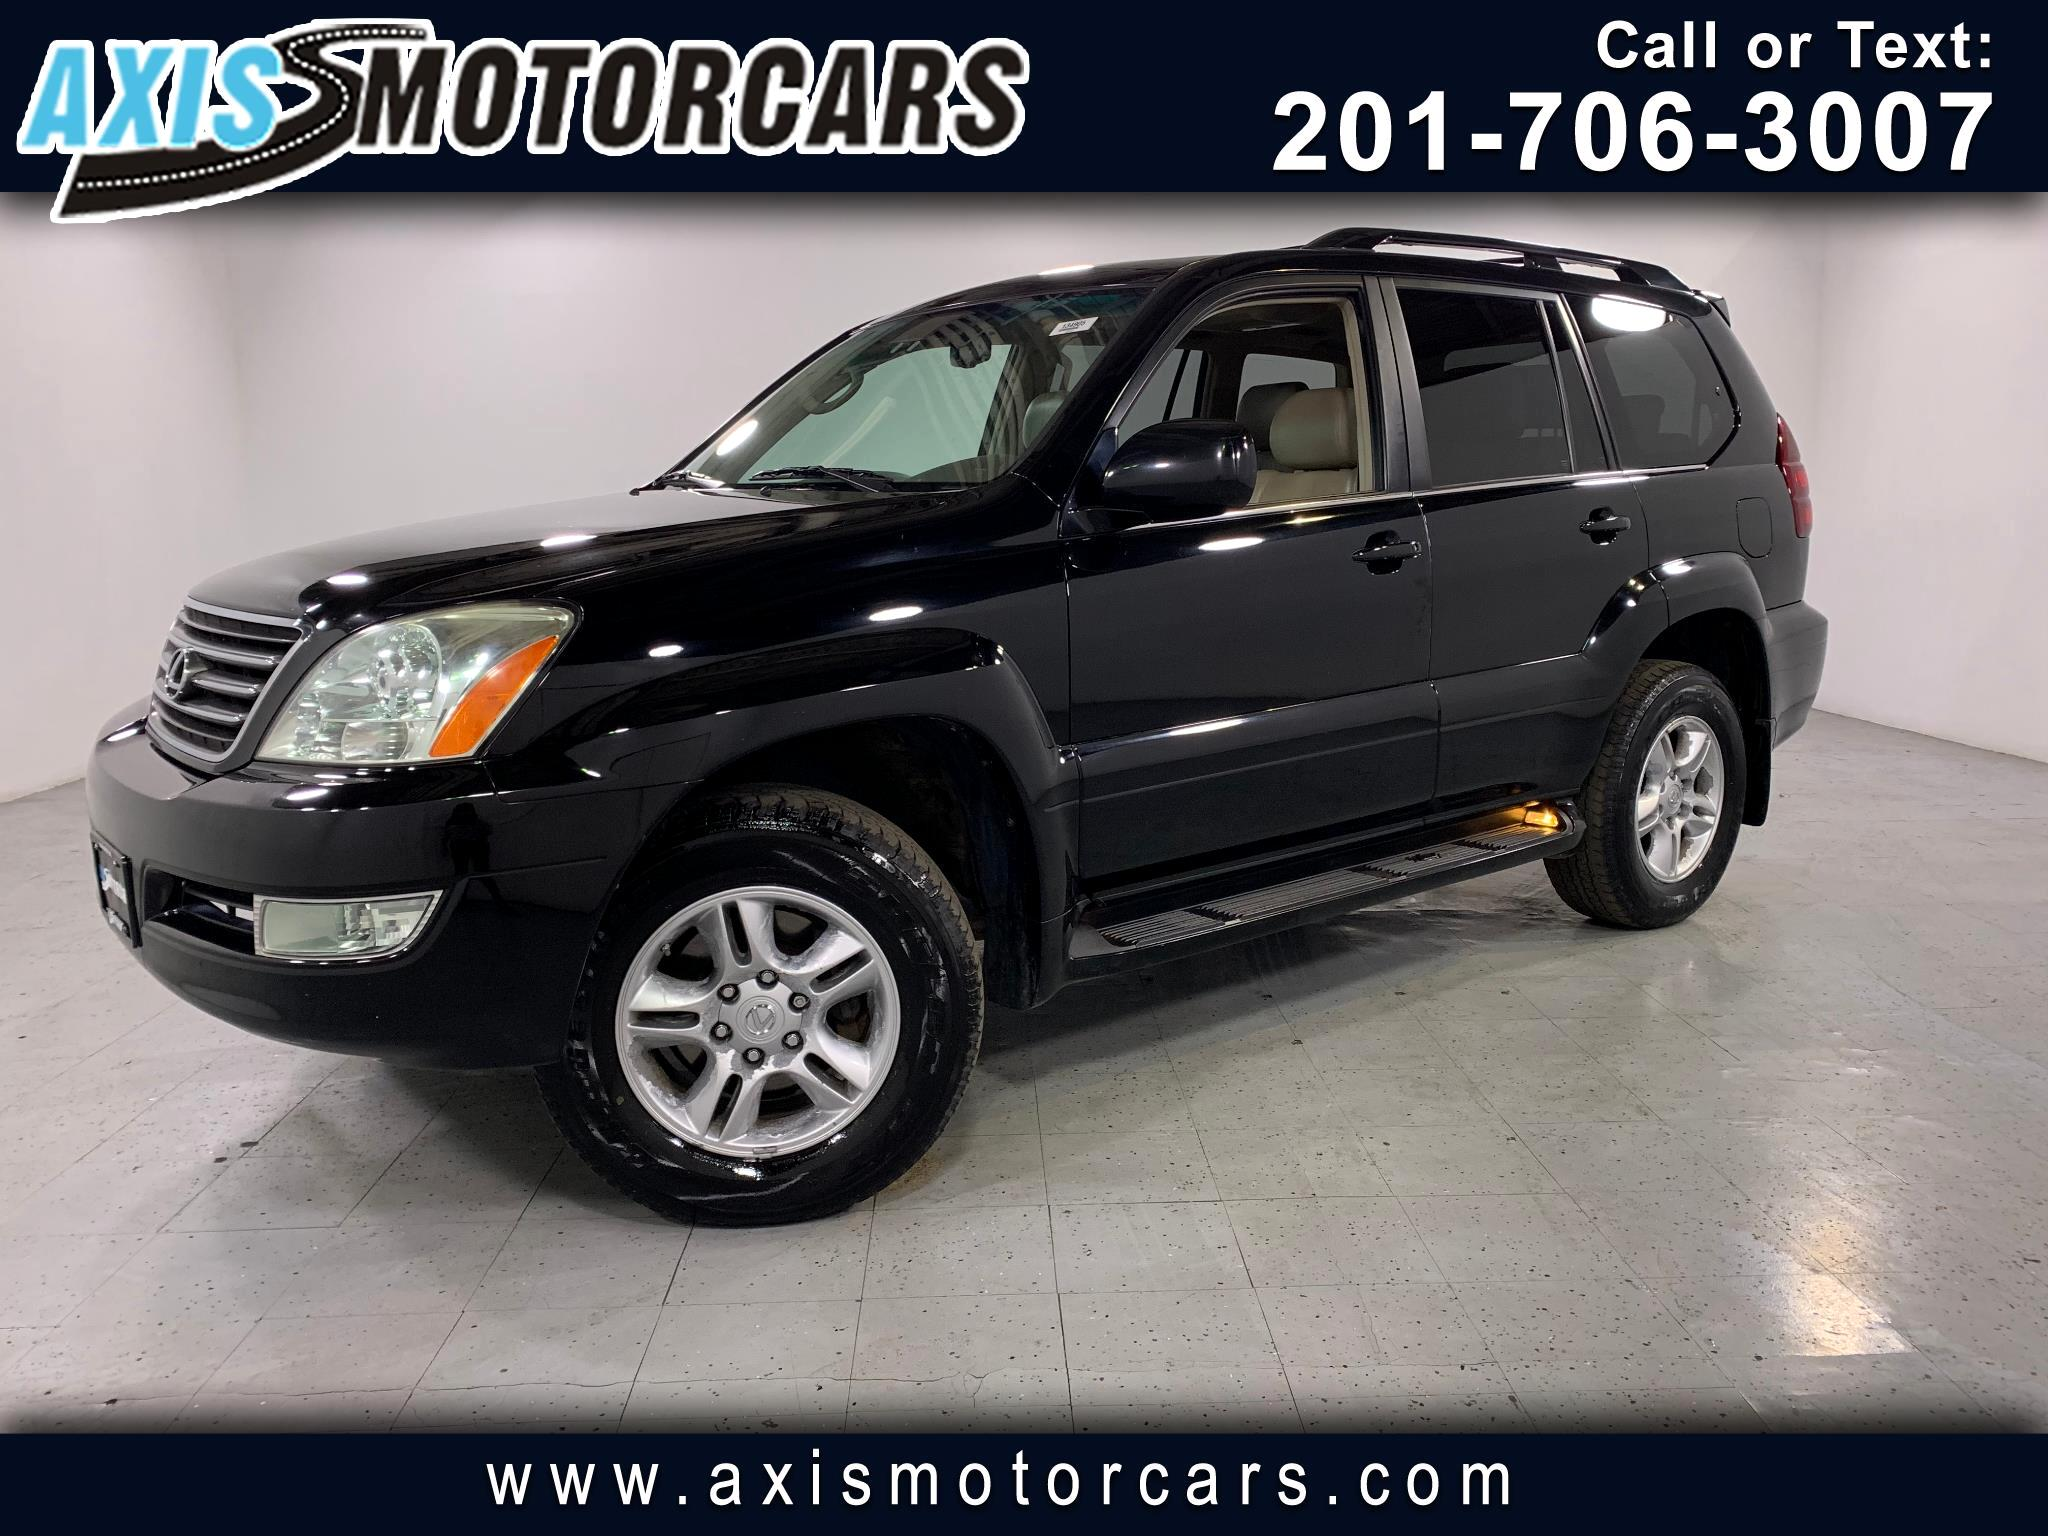 2007 Lexus GX 470 w/Mark Levinson Sound Rear Entertainment Sunroof